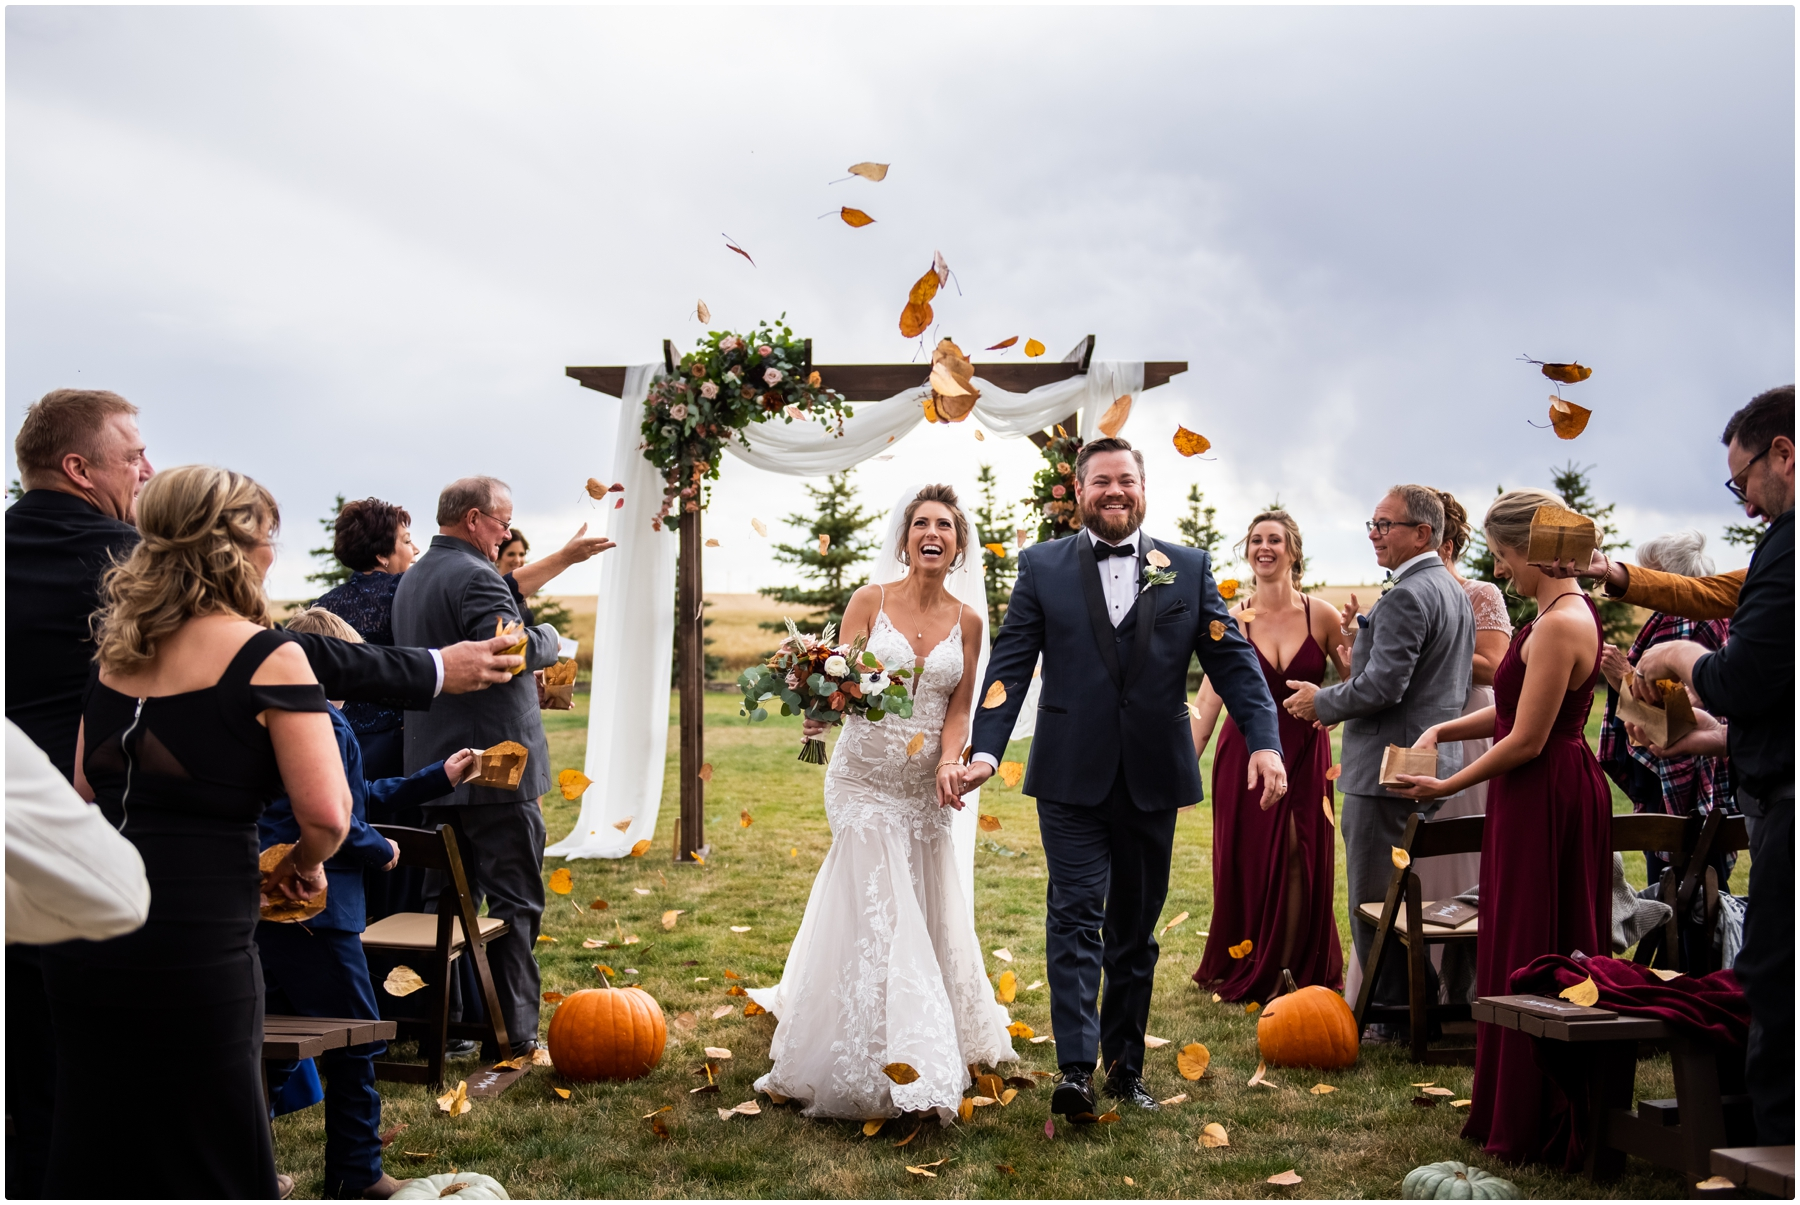 Outdoor Autumn Barn Wedding Ceremony Photos- Sweet Haven Barn